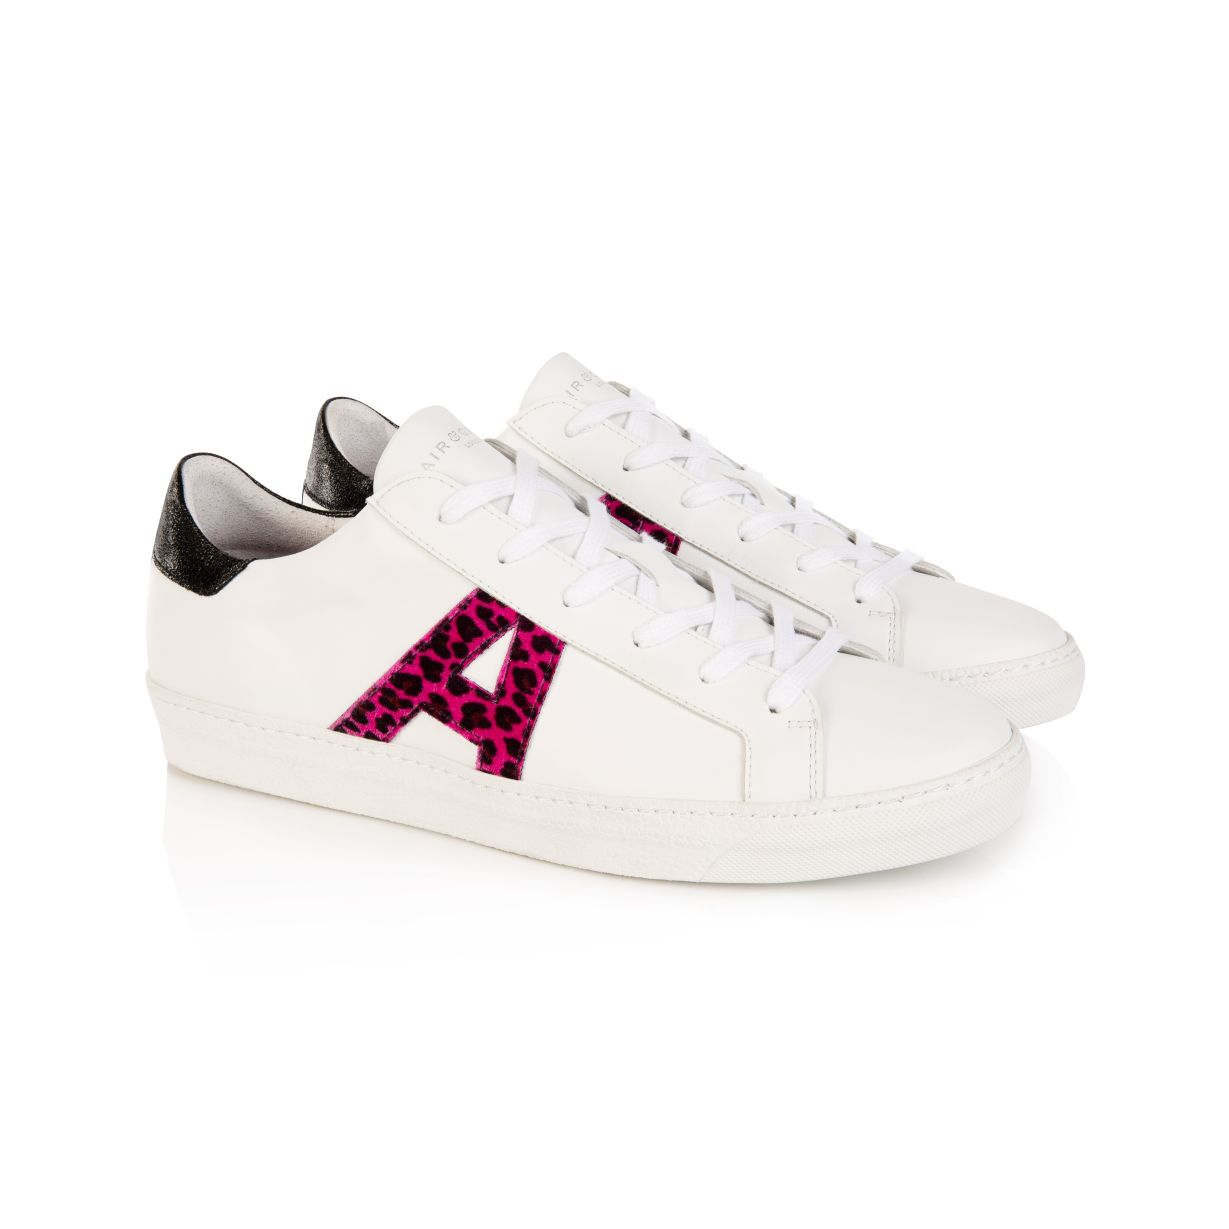 CRU SIGNATURE: VEGAN WHITE & PINK LEOPARD TRAINERS - COMING SOON